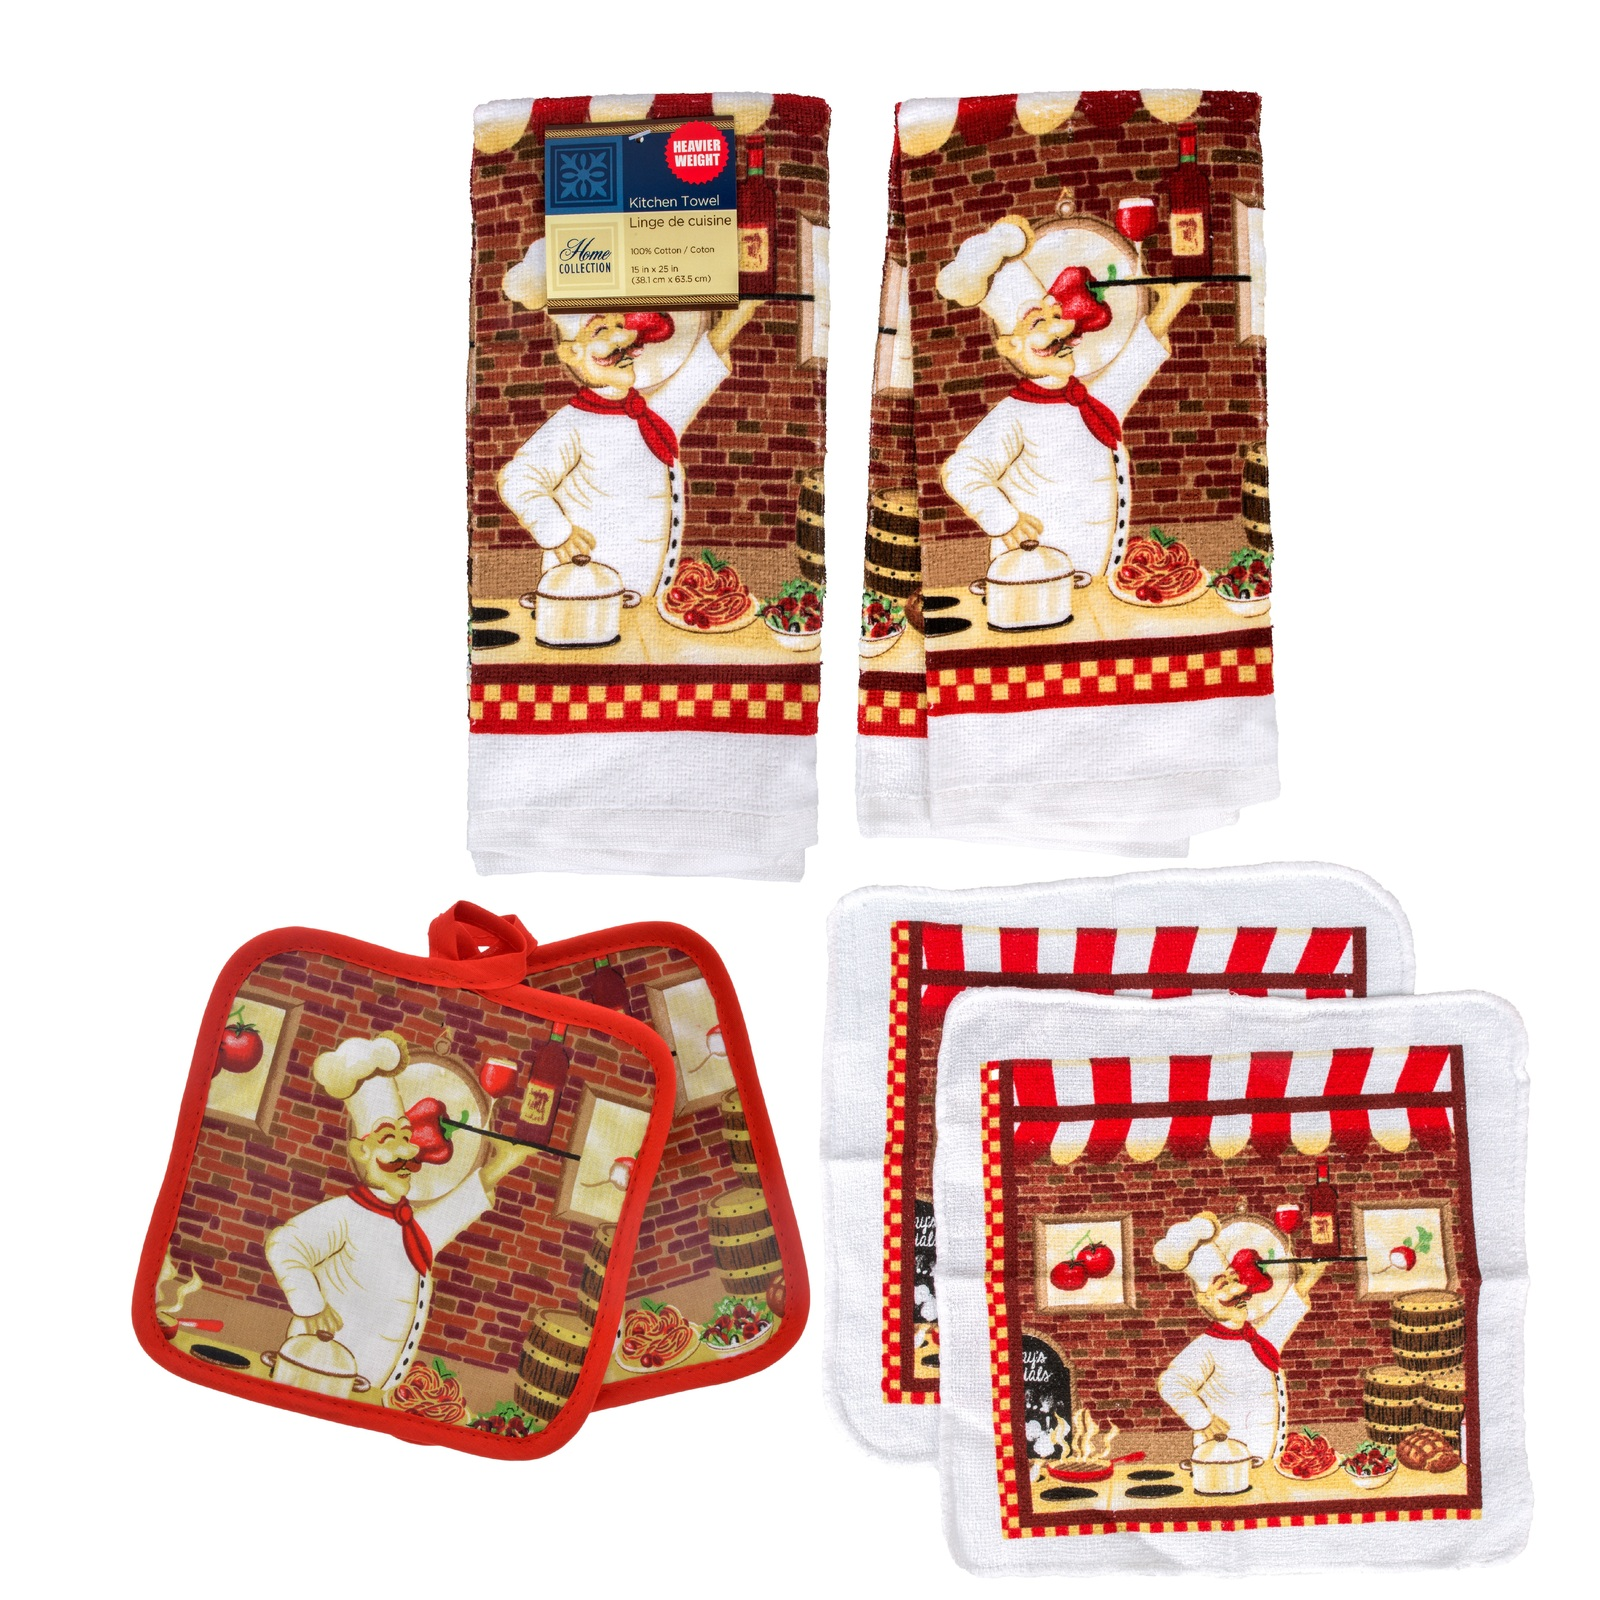 RED WINE FAT CHEF KITCHEN SET 6pc Towels Potholders Dishcloths Bistro Cook NEW - $14.99